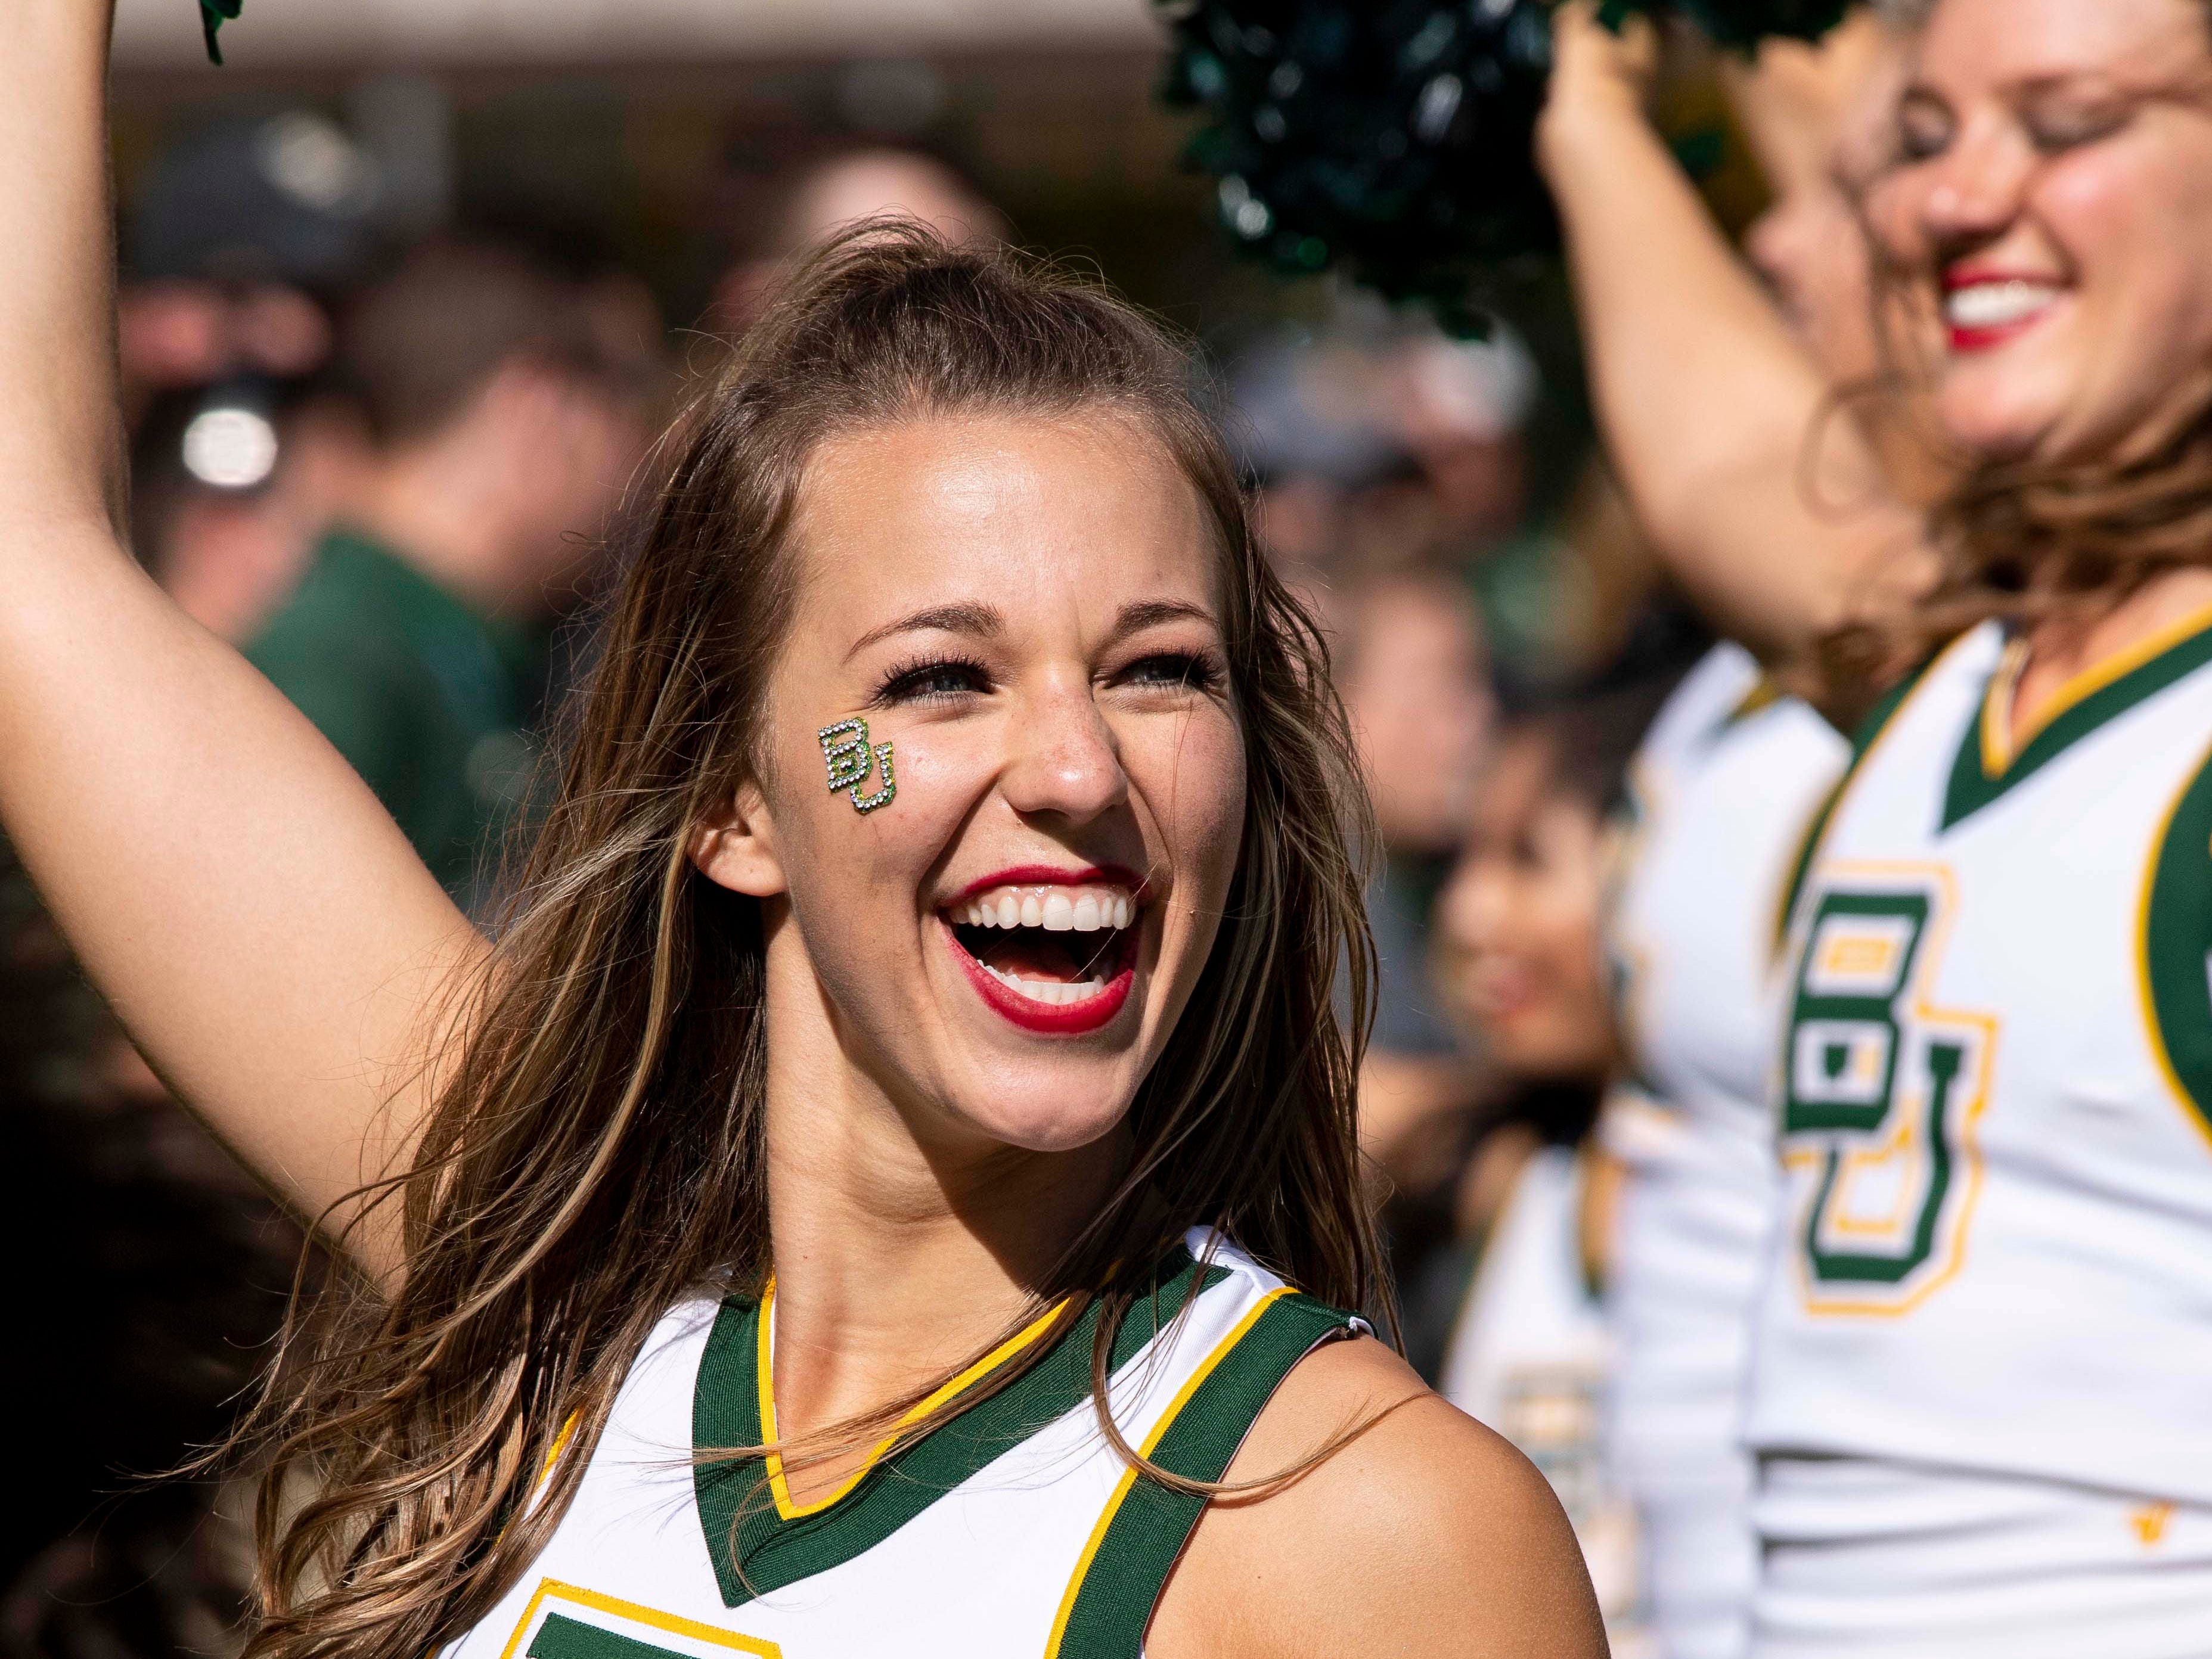 Week 10: A Baylor Bears cheerleader performs during the second half of the game against the Oklahoma State Cowboys at McLane Stadium.